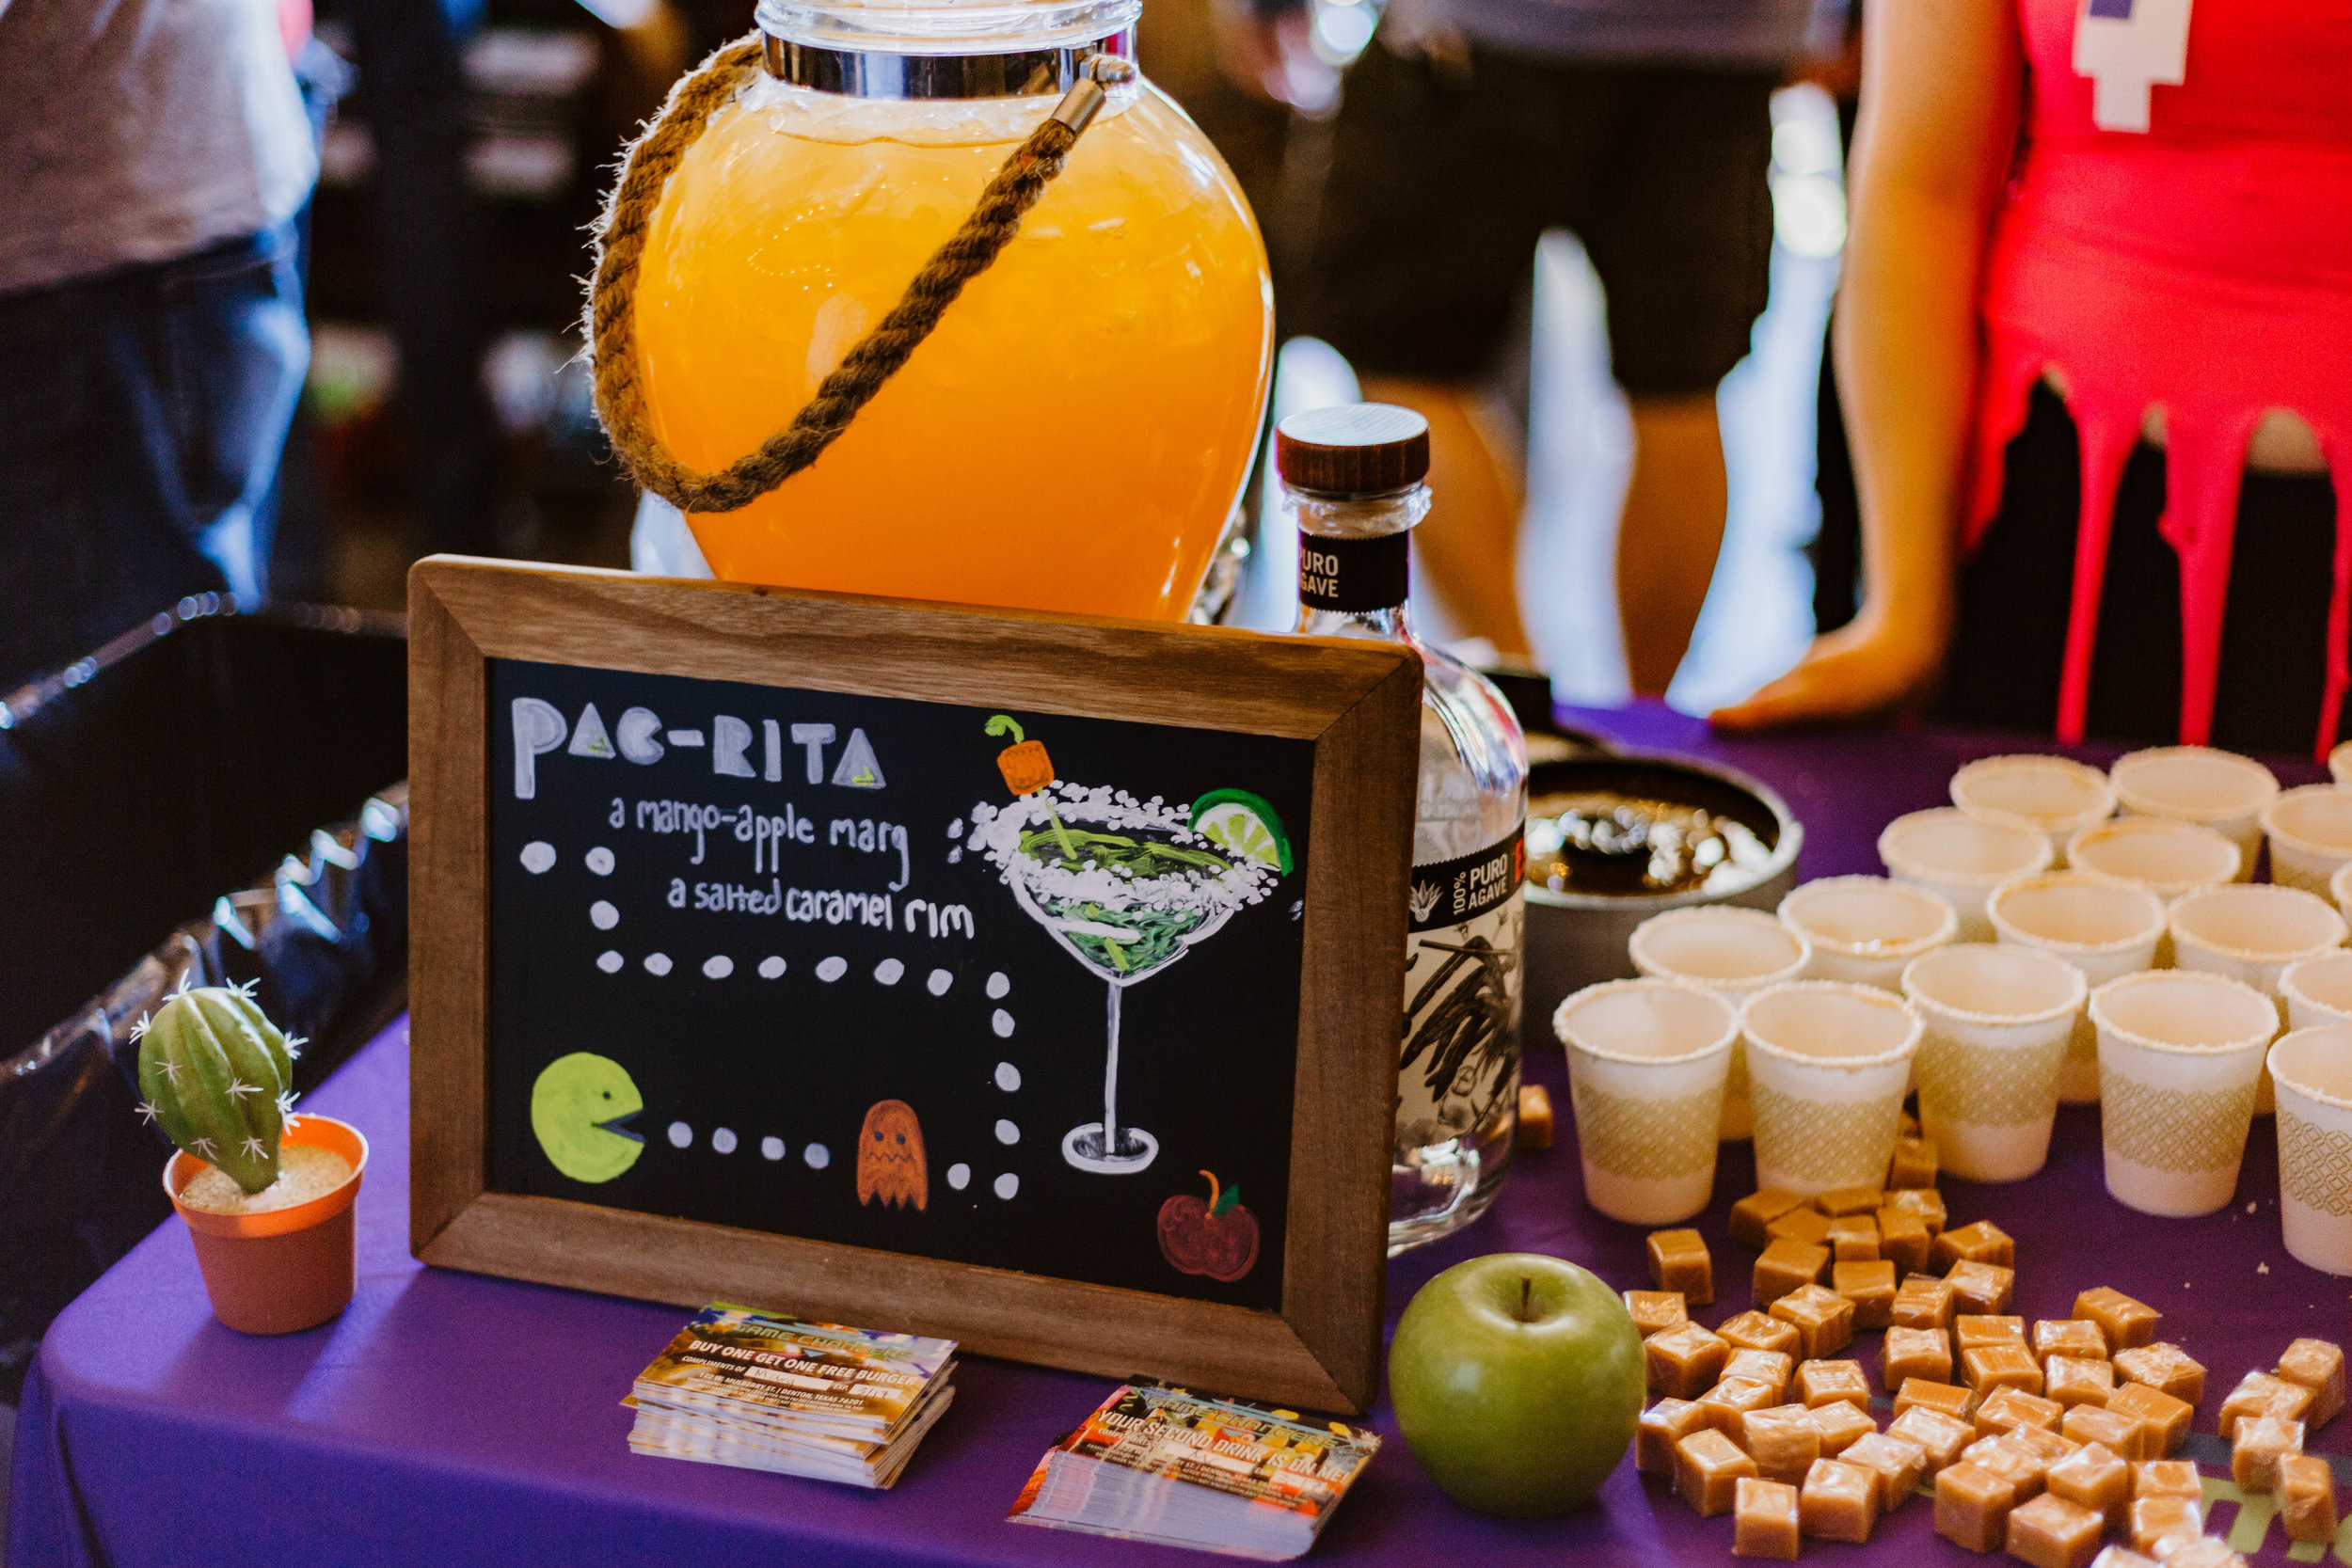 Game Changers' offering: the Pac-Rita.